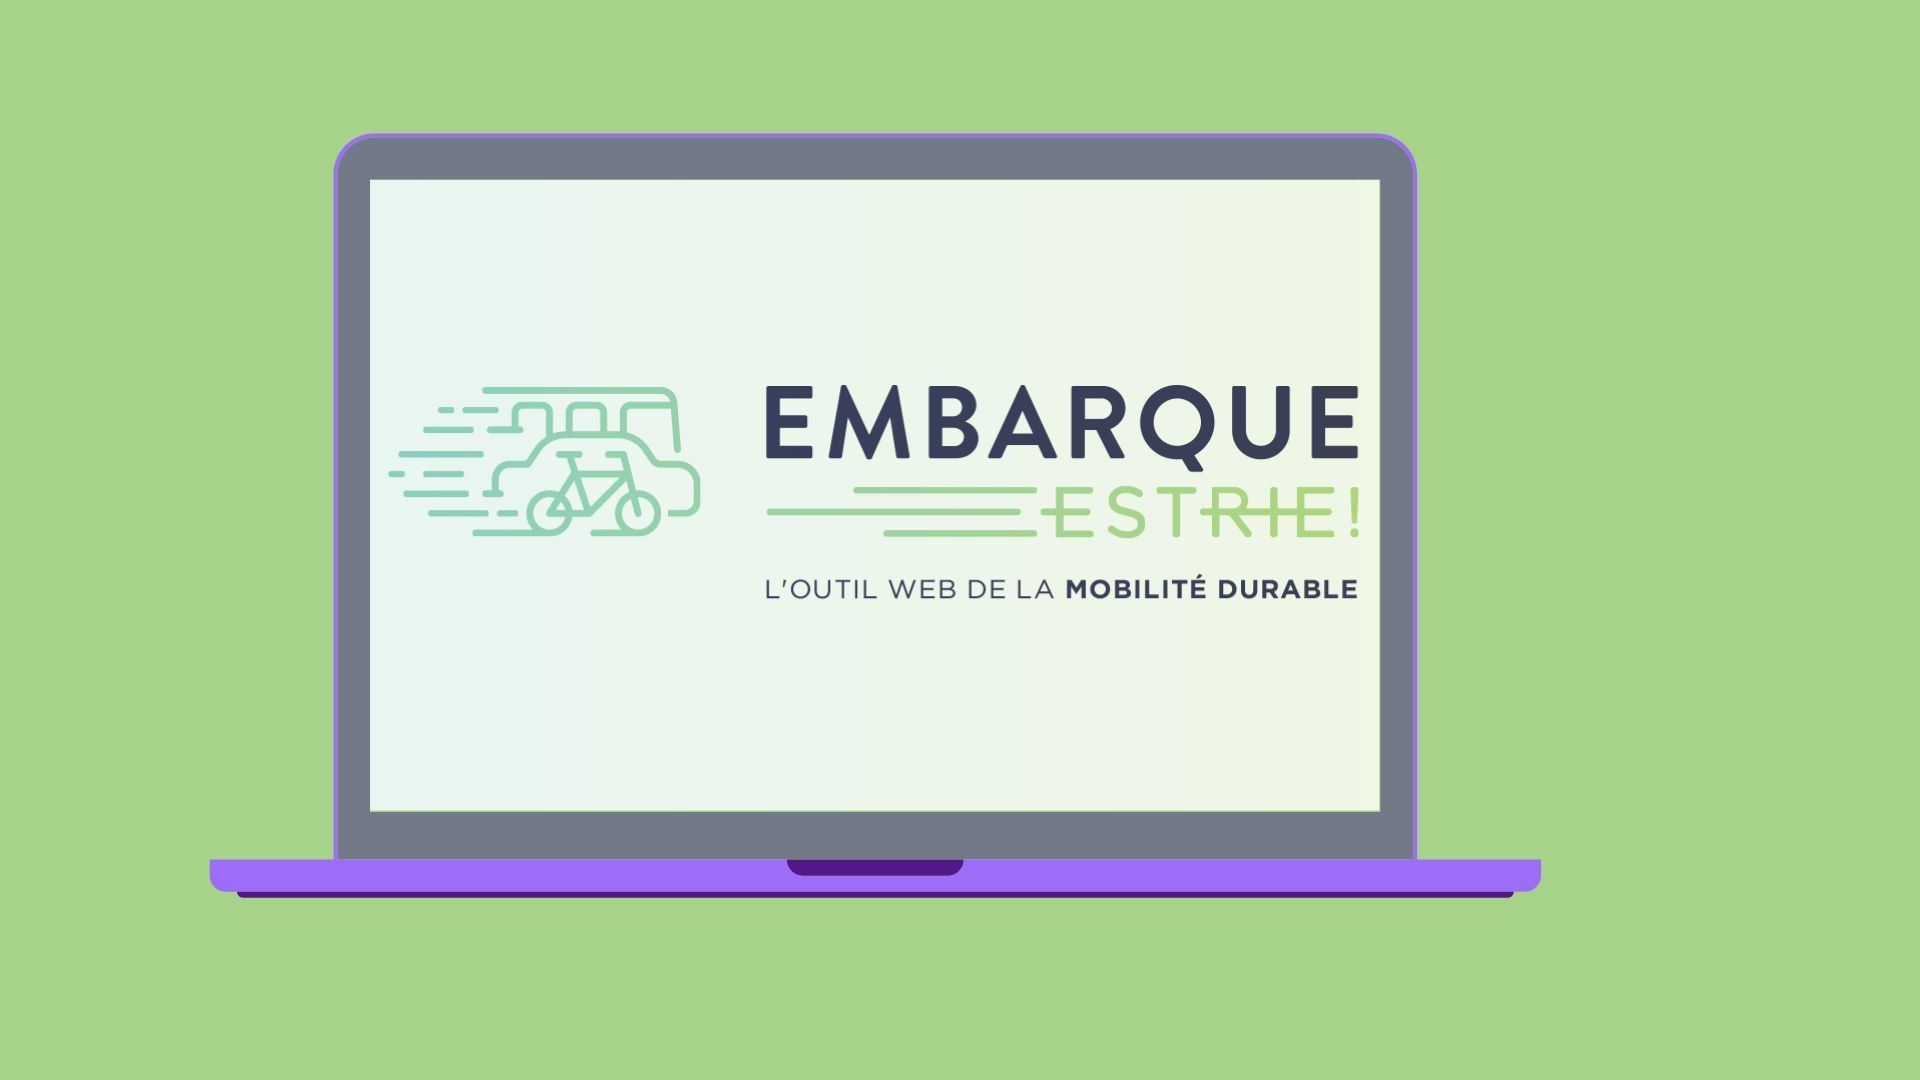 embarque-estrie-loutil-web-de-la-mobilite-durable